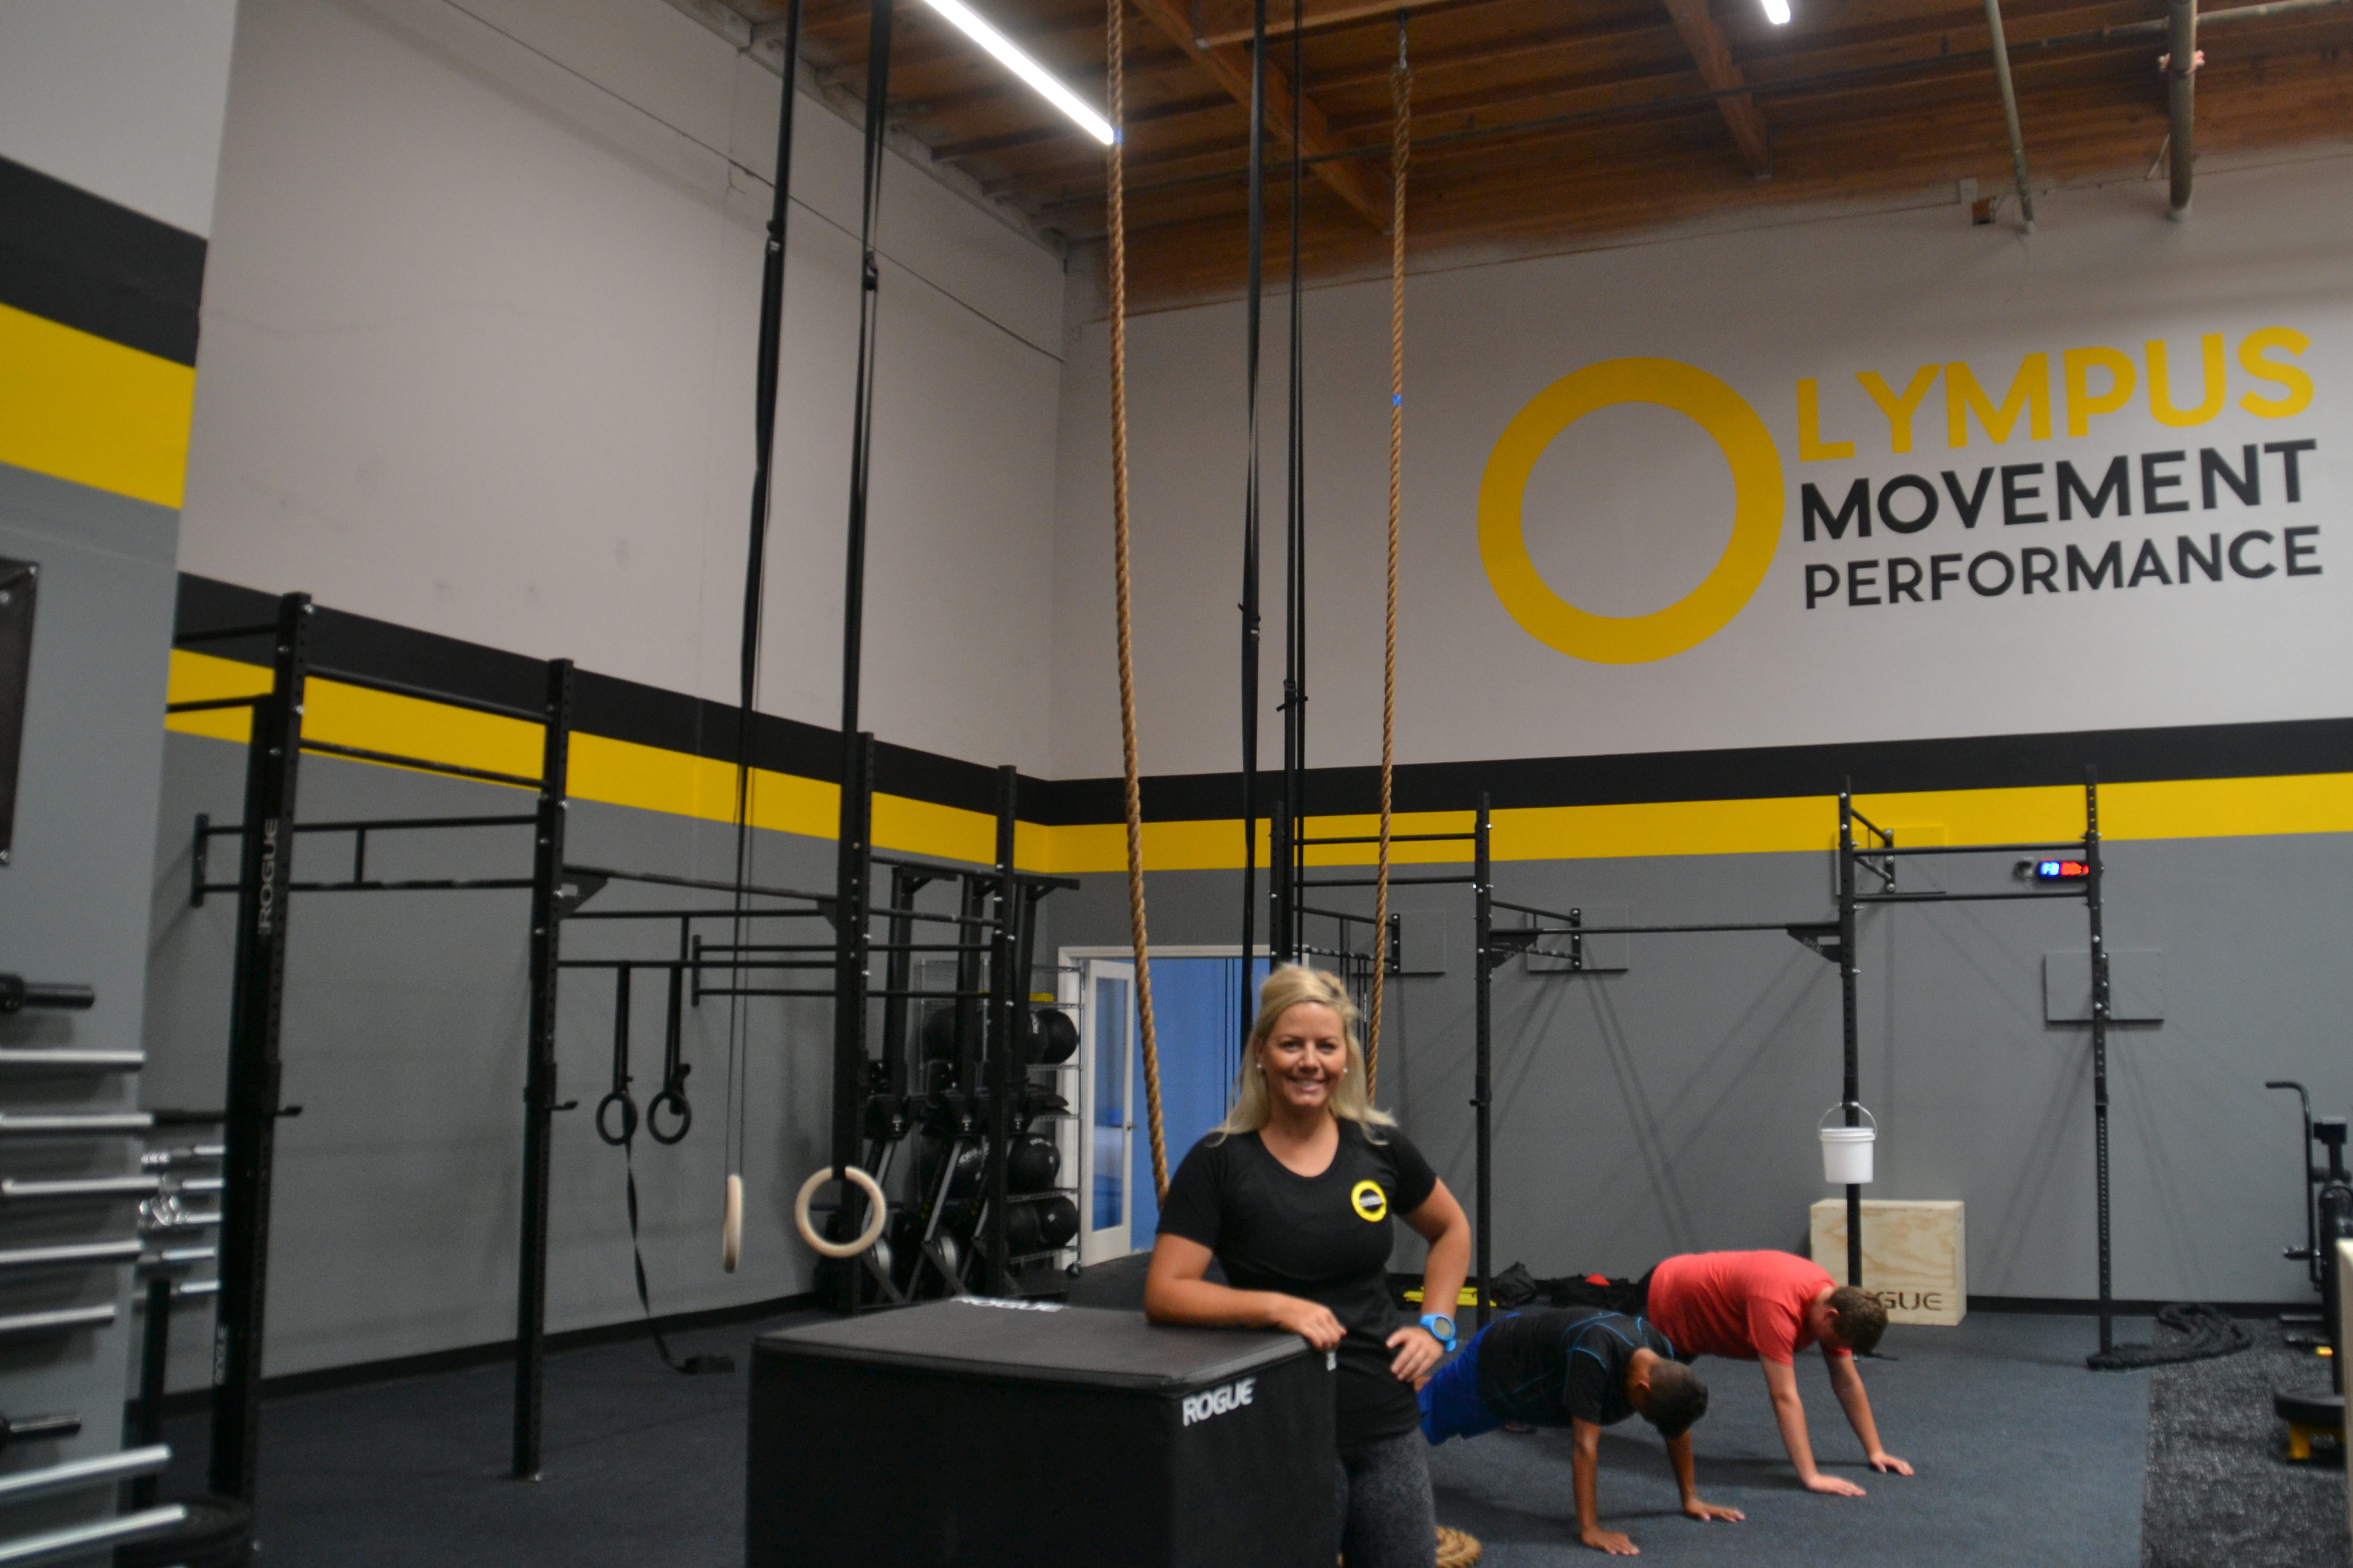 Greater buffalo physical therapy - Olympus Movement Performance Founder Annemarie Alf Stands Inside Her Vista Facility As Clients Train In The Background The Vista Business Opened In July